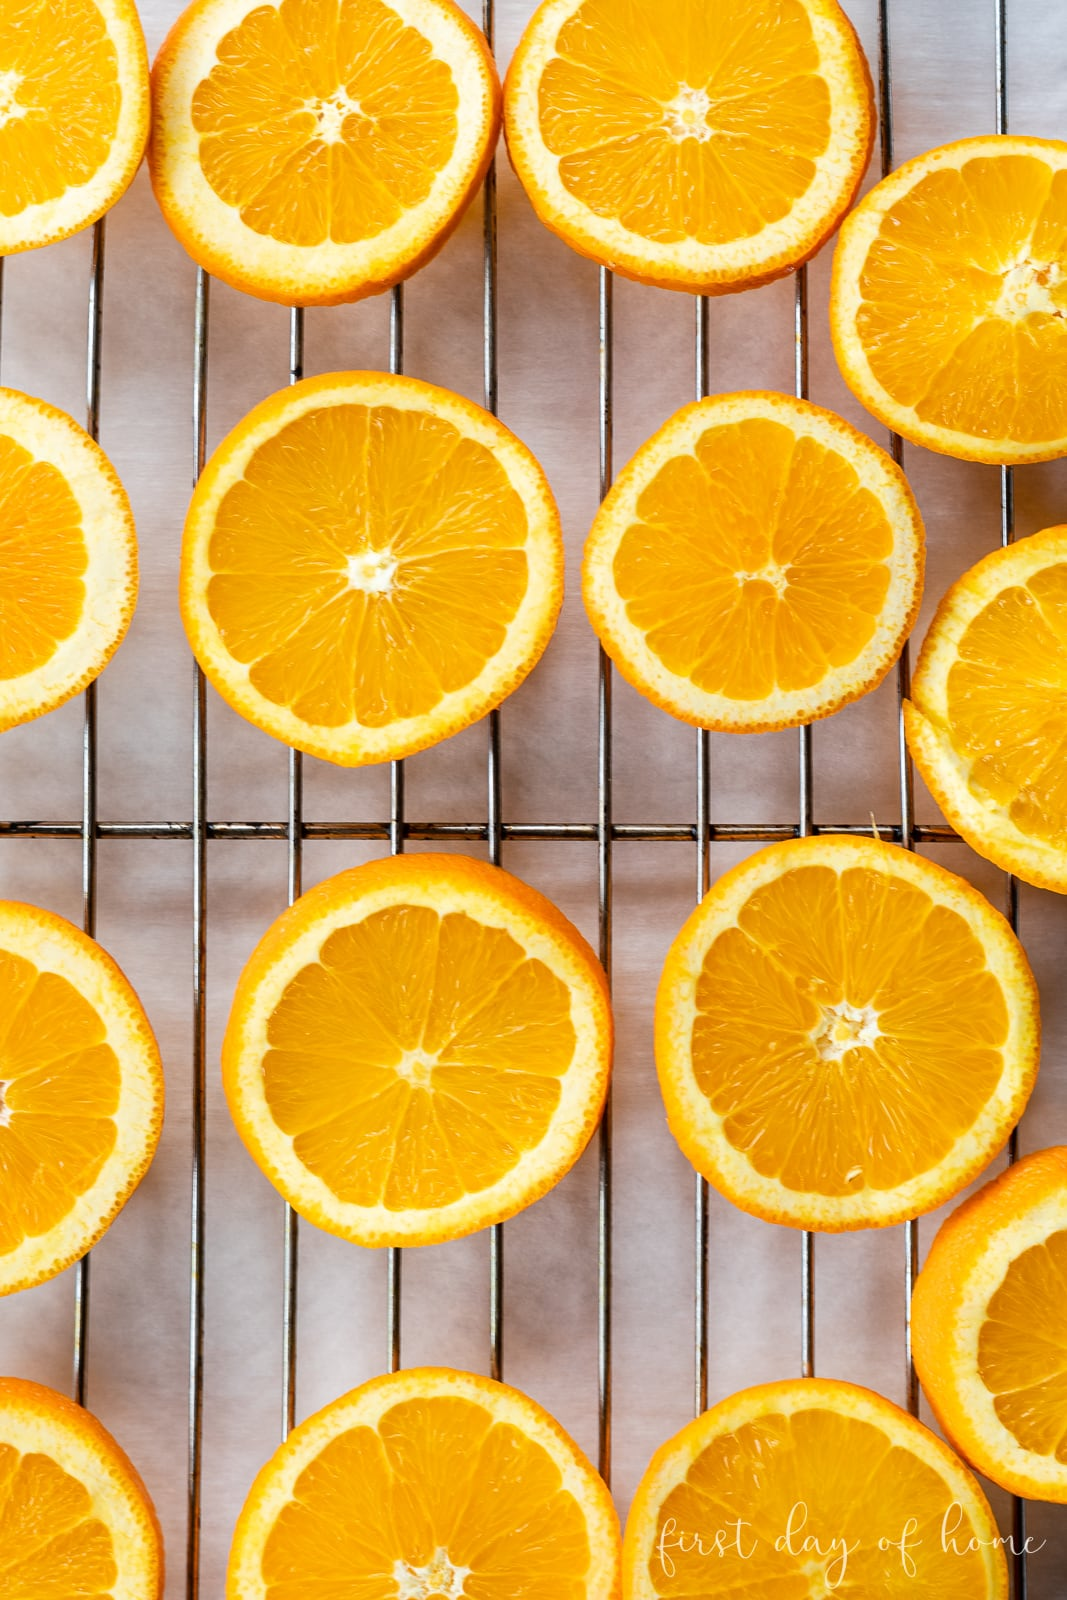 Orange slices on baking rack before drying in the oven